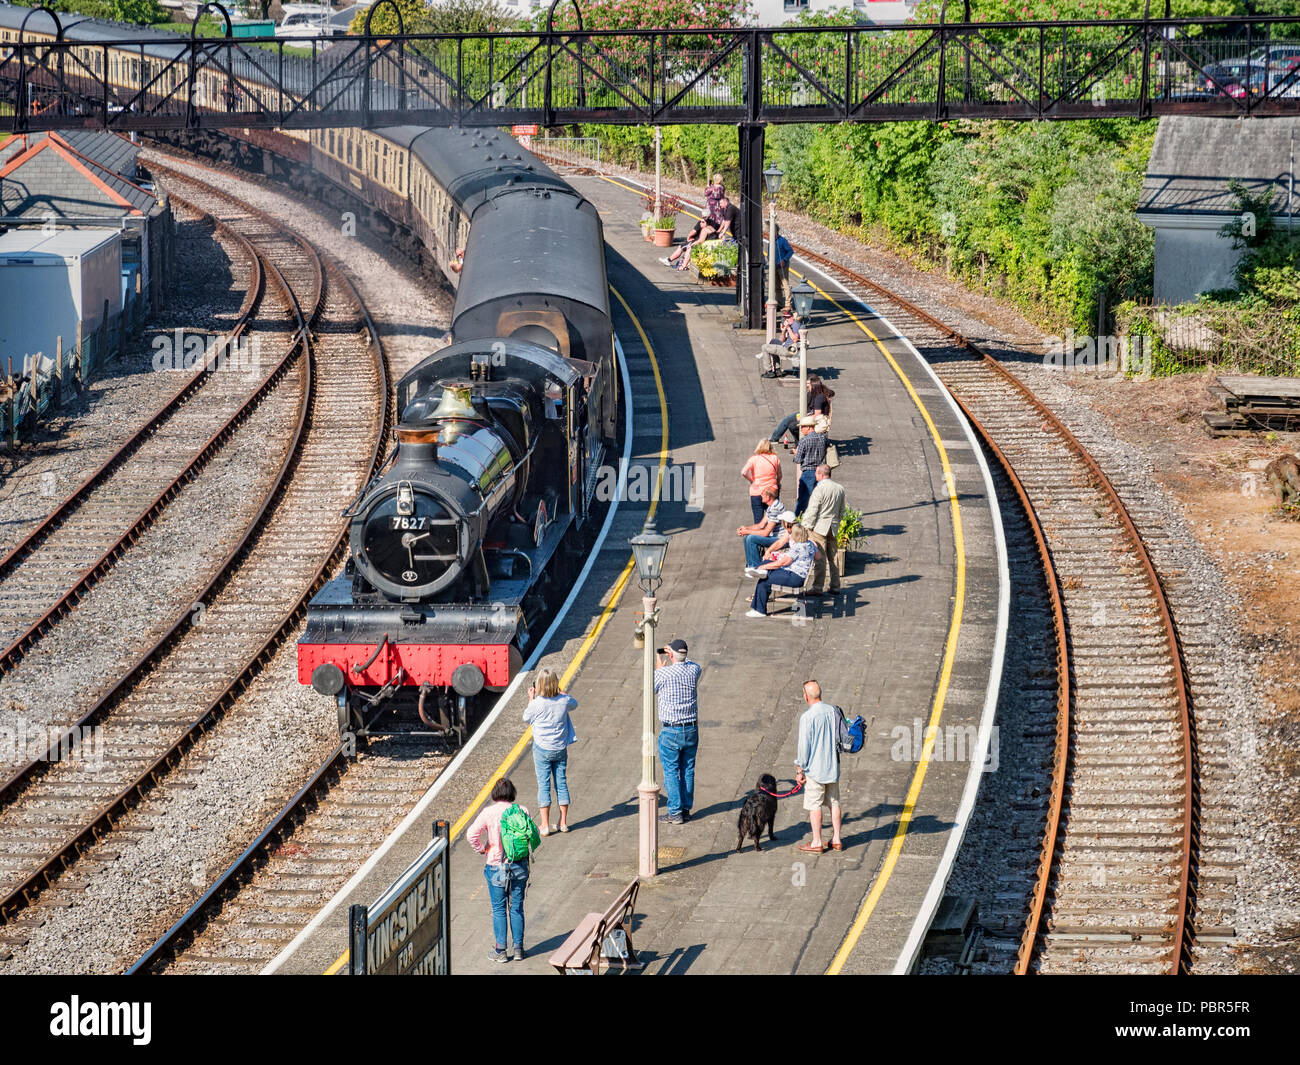 23 May 2018; Kingswear, Devon, UK - A passenger train hauled by steam locomotive 7827 'Lydham Manor' enters Kingswear station on the Dartmouth Steam R - Stock Image